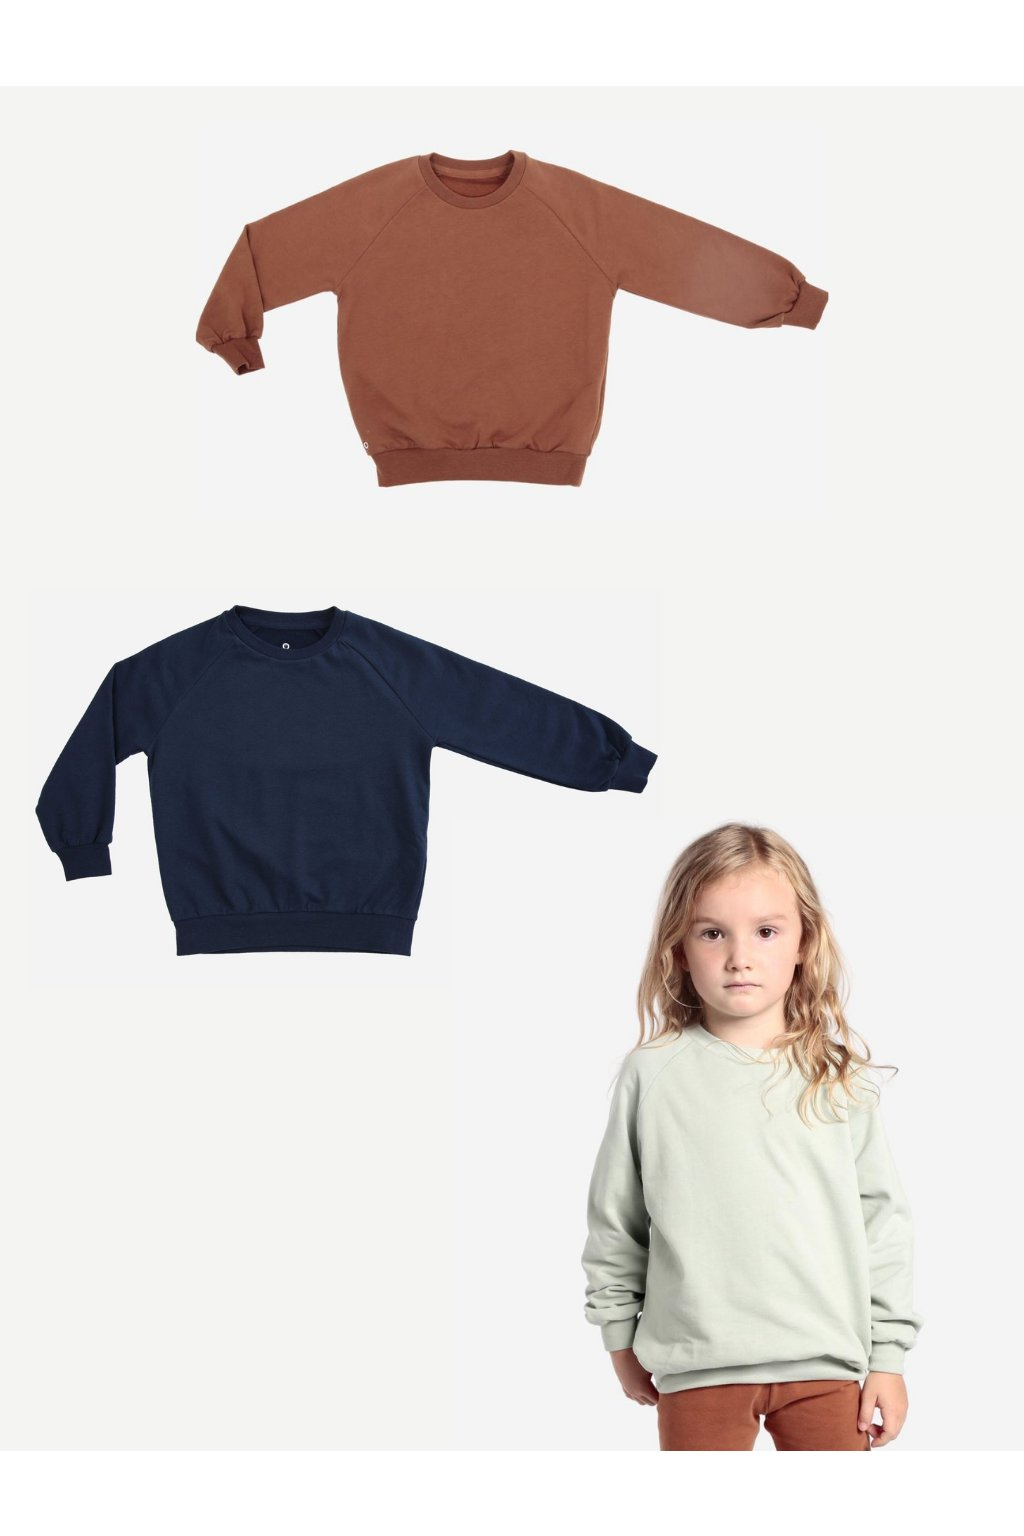 OH SO COSY SWEATER BUNDLE OF 3